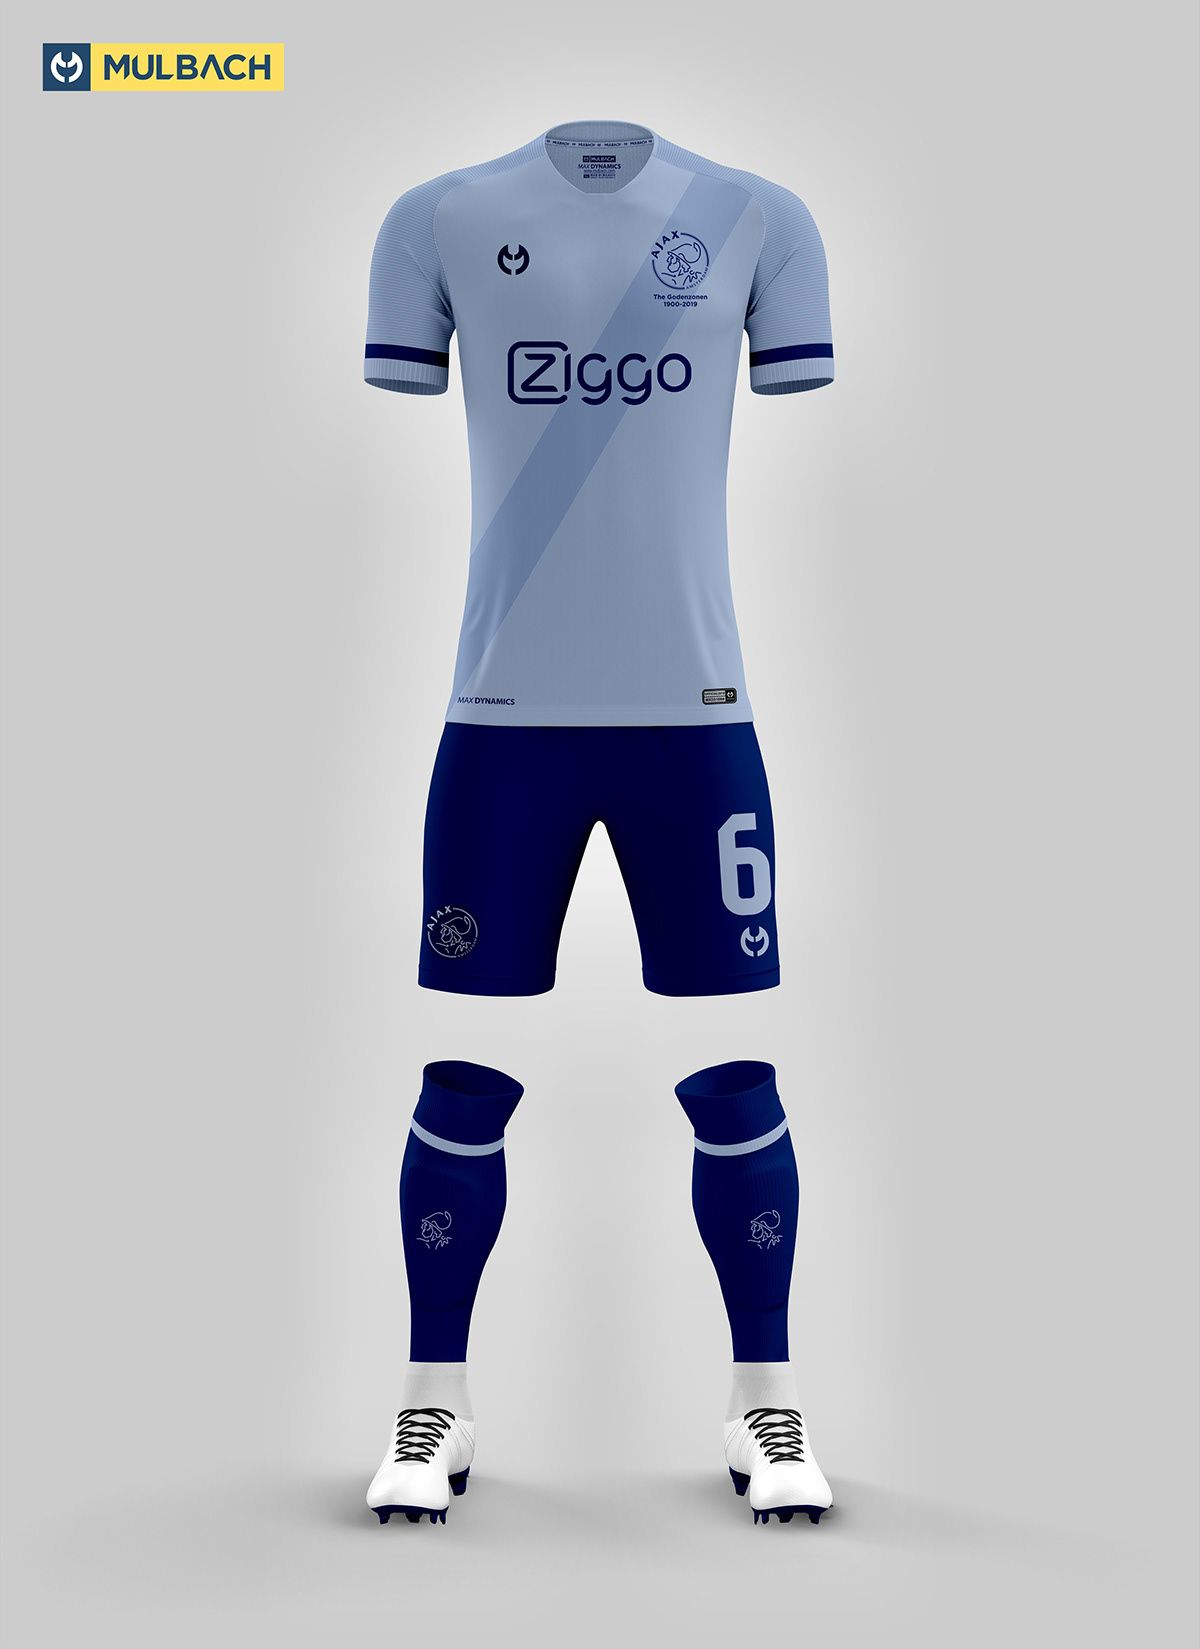 4440816c22b Ajax Amsterdam 2019/2020 Kits Concept on Behance | Uniformes ...